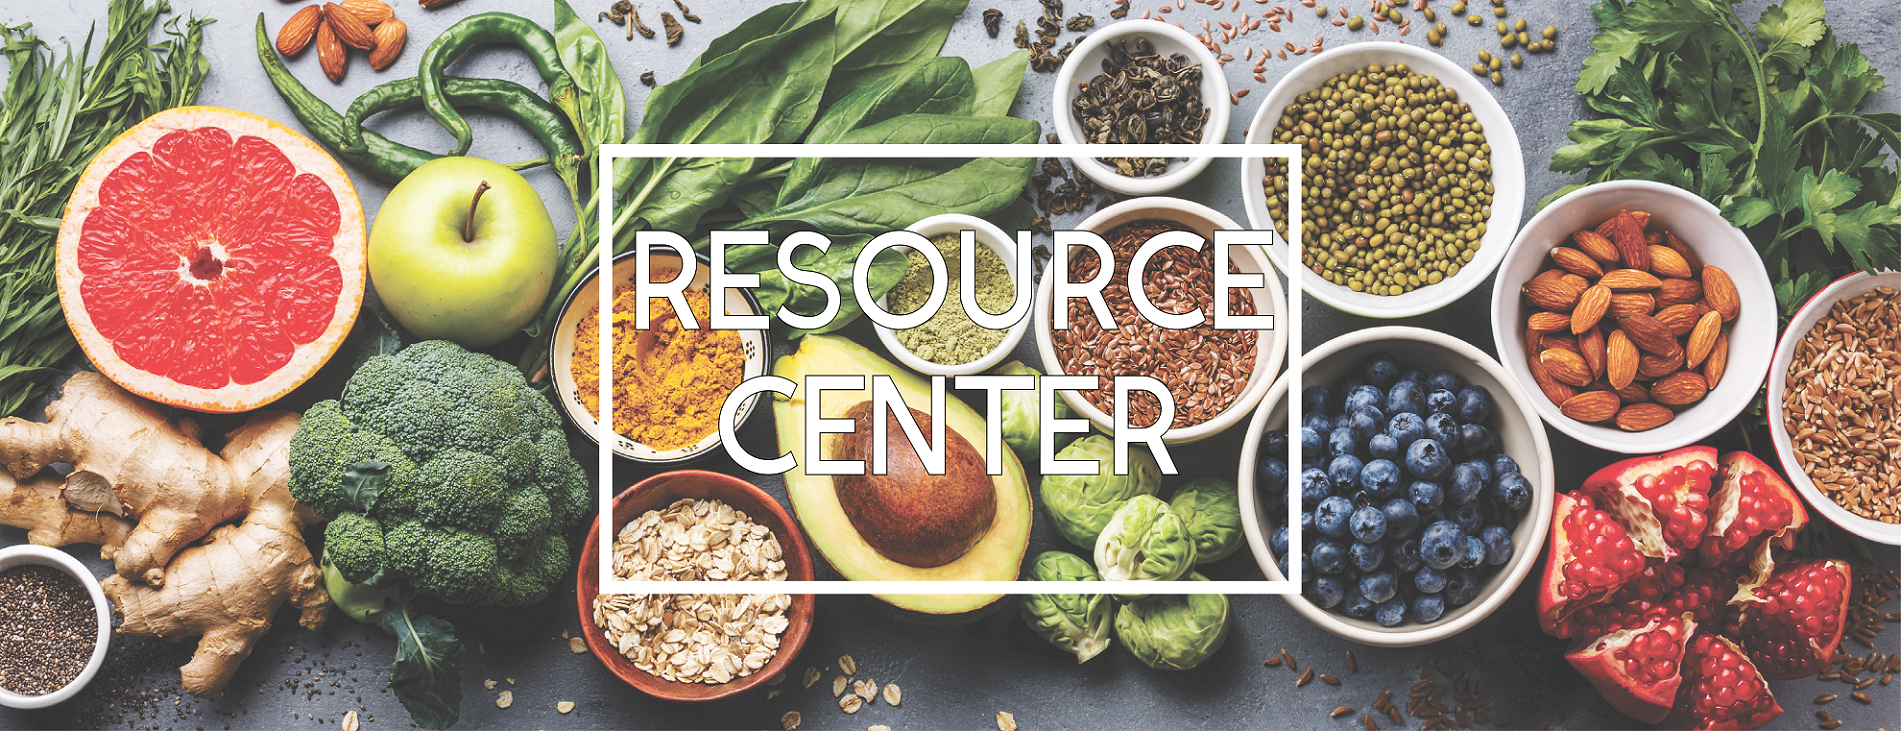 Michigan Healthy Food Resource Center